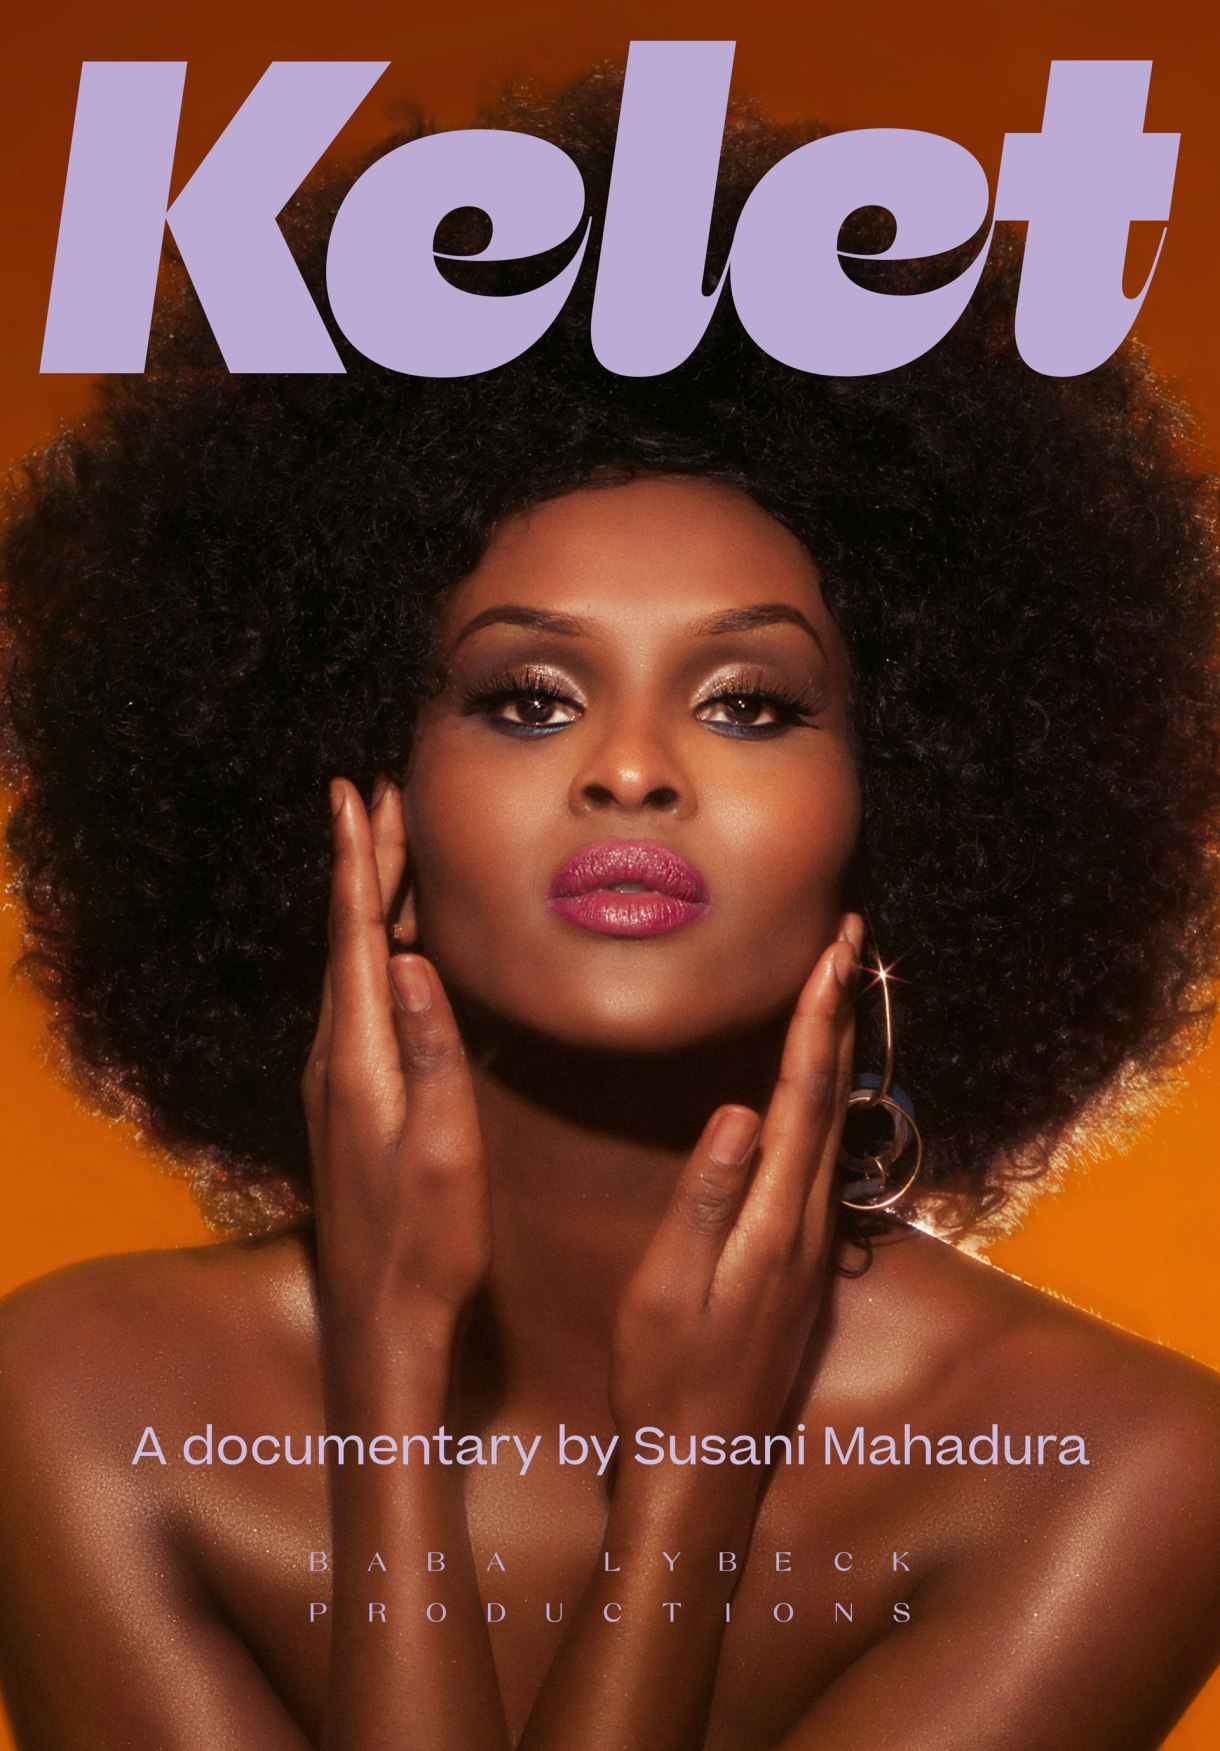 """Image shows a beautiful black dark skinned woman with flawless makeup and a large afro staring into the camera. Her shoulders are bare and her hands are softly framing her face. Purple text reading """"Kelet"""" is above her."""